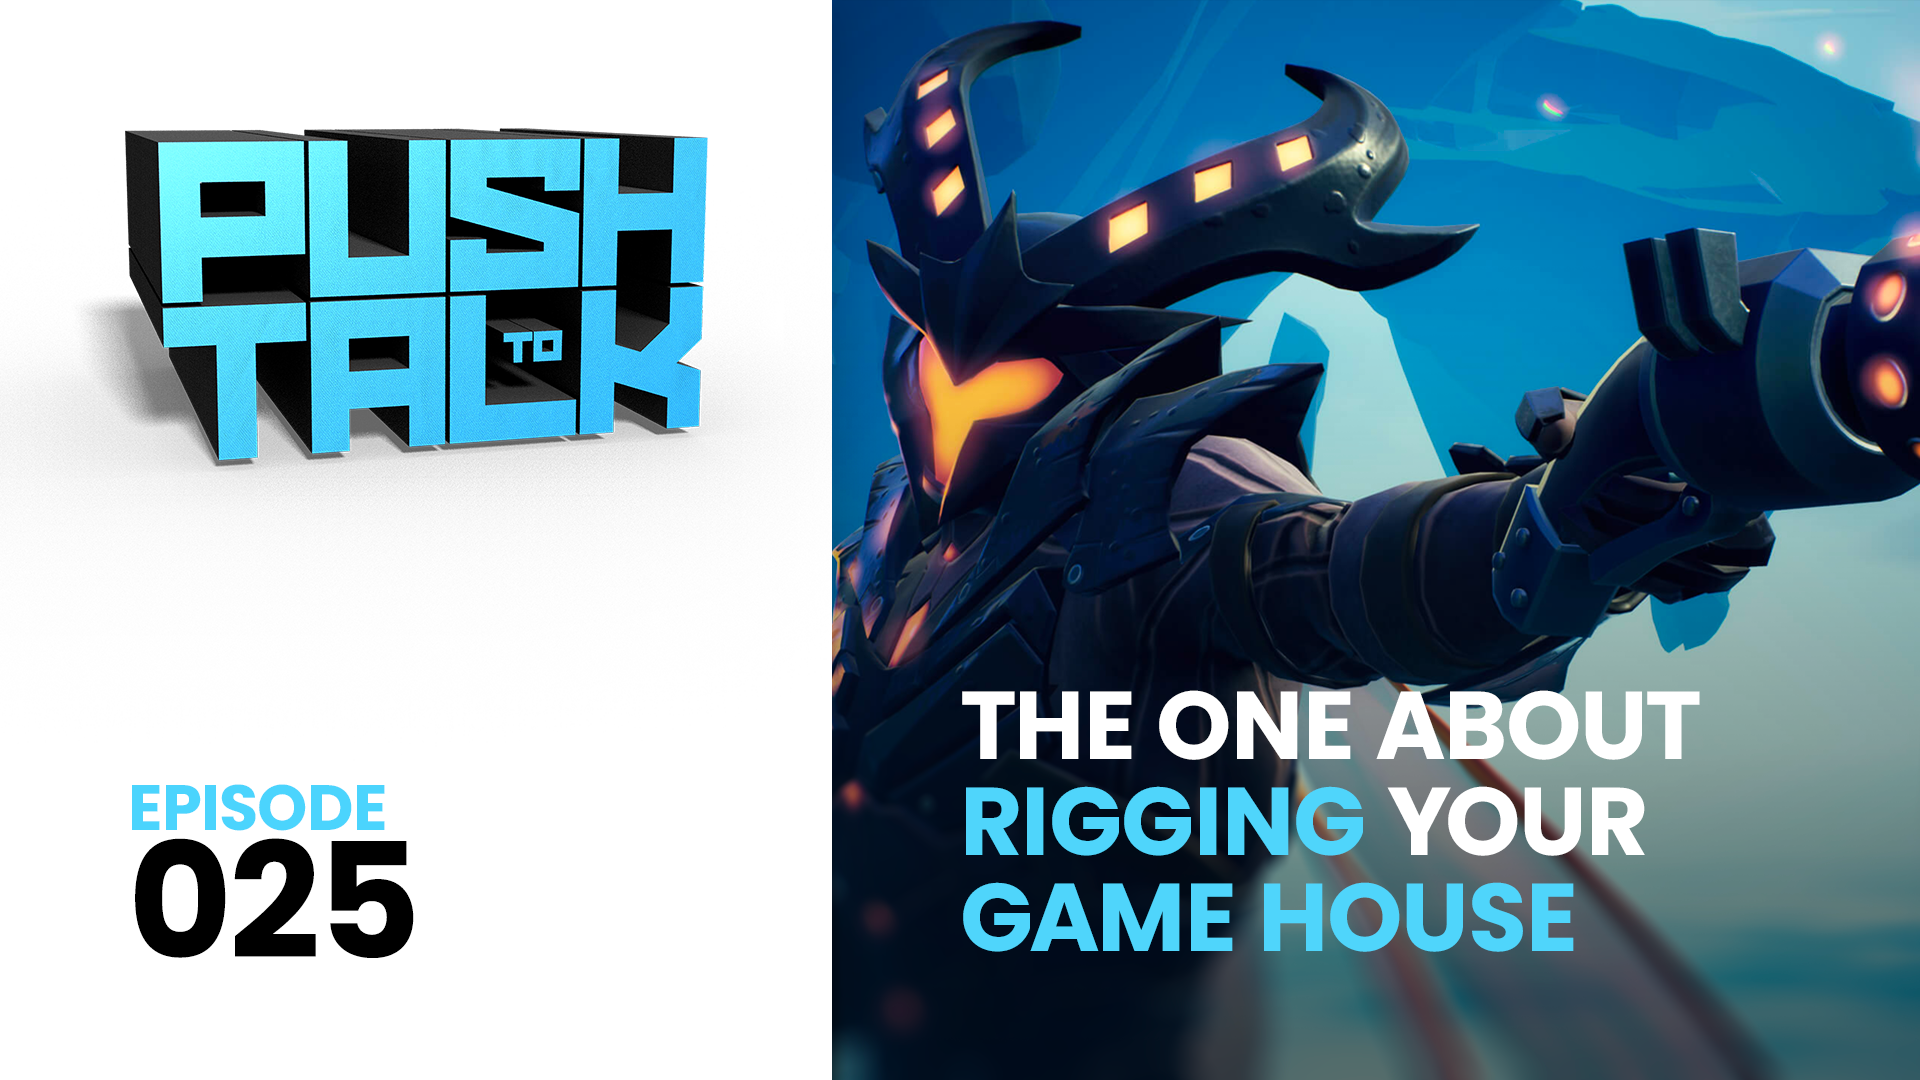 ep025 - Push to Talk: Episode 025 – The One About Rigging Your Game House